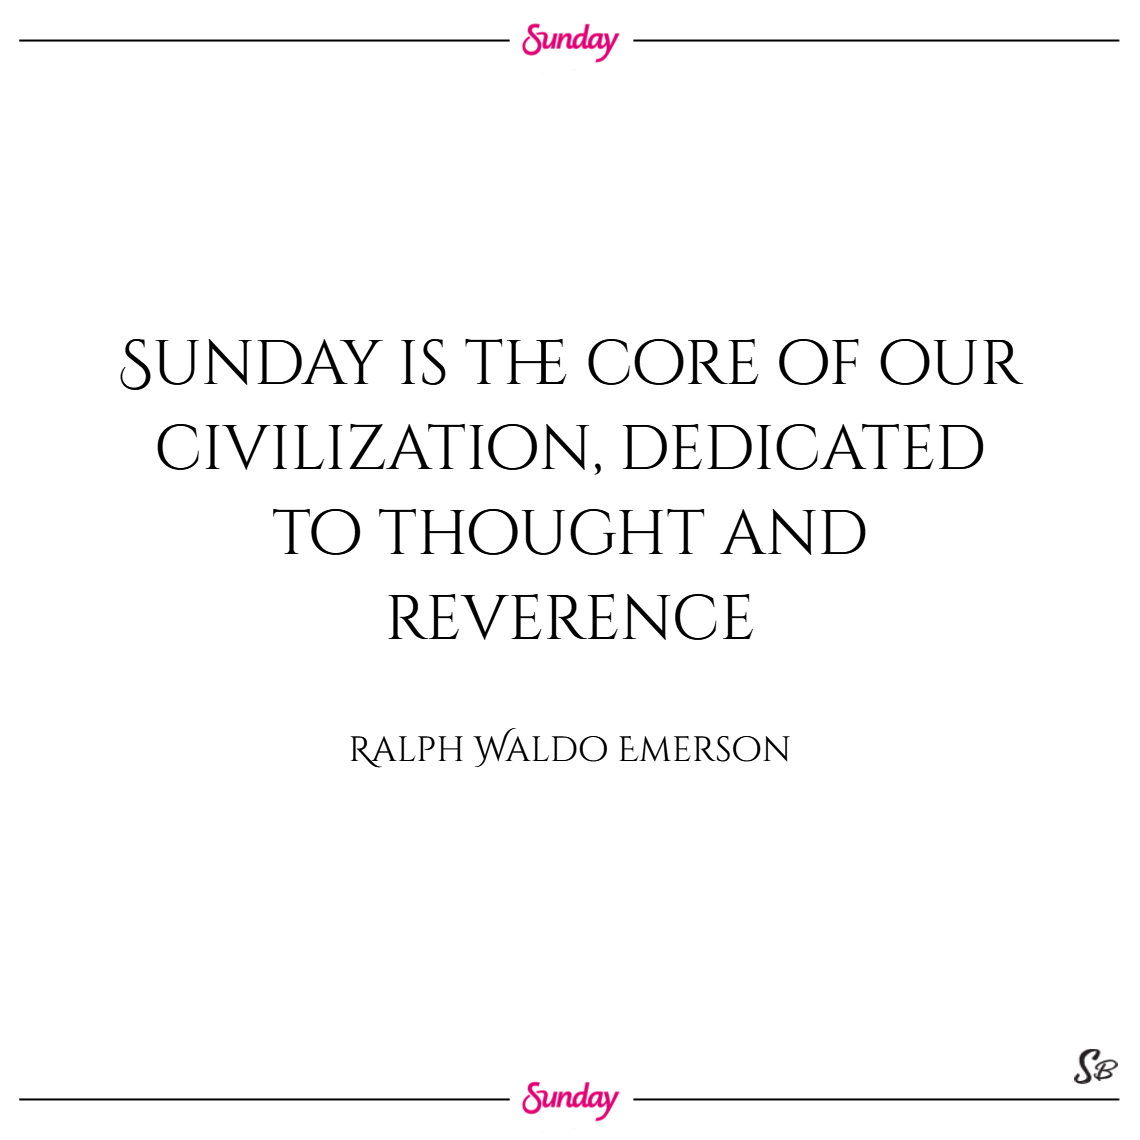 Sunday is the core of our civilization, dedicated to thought and reverence. – ralph waldo emerson